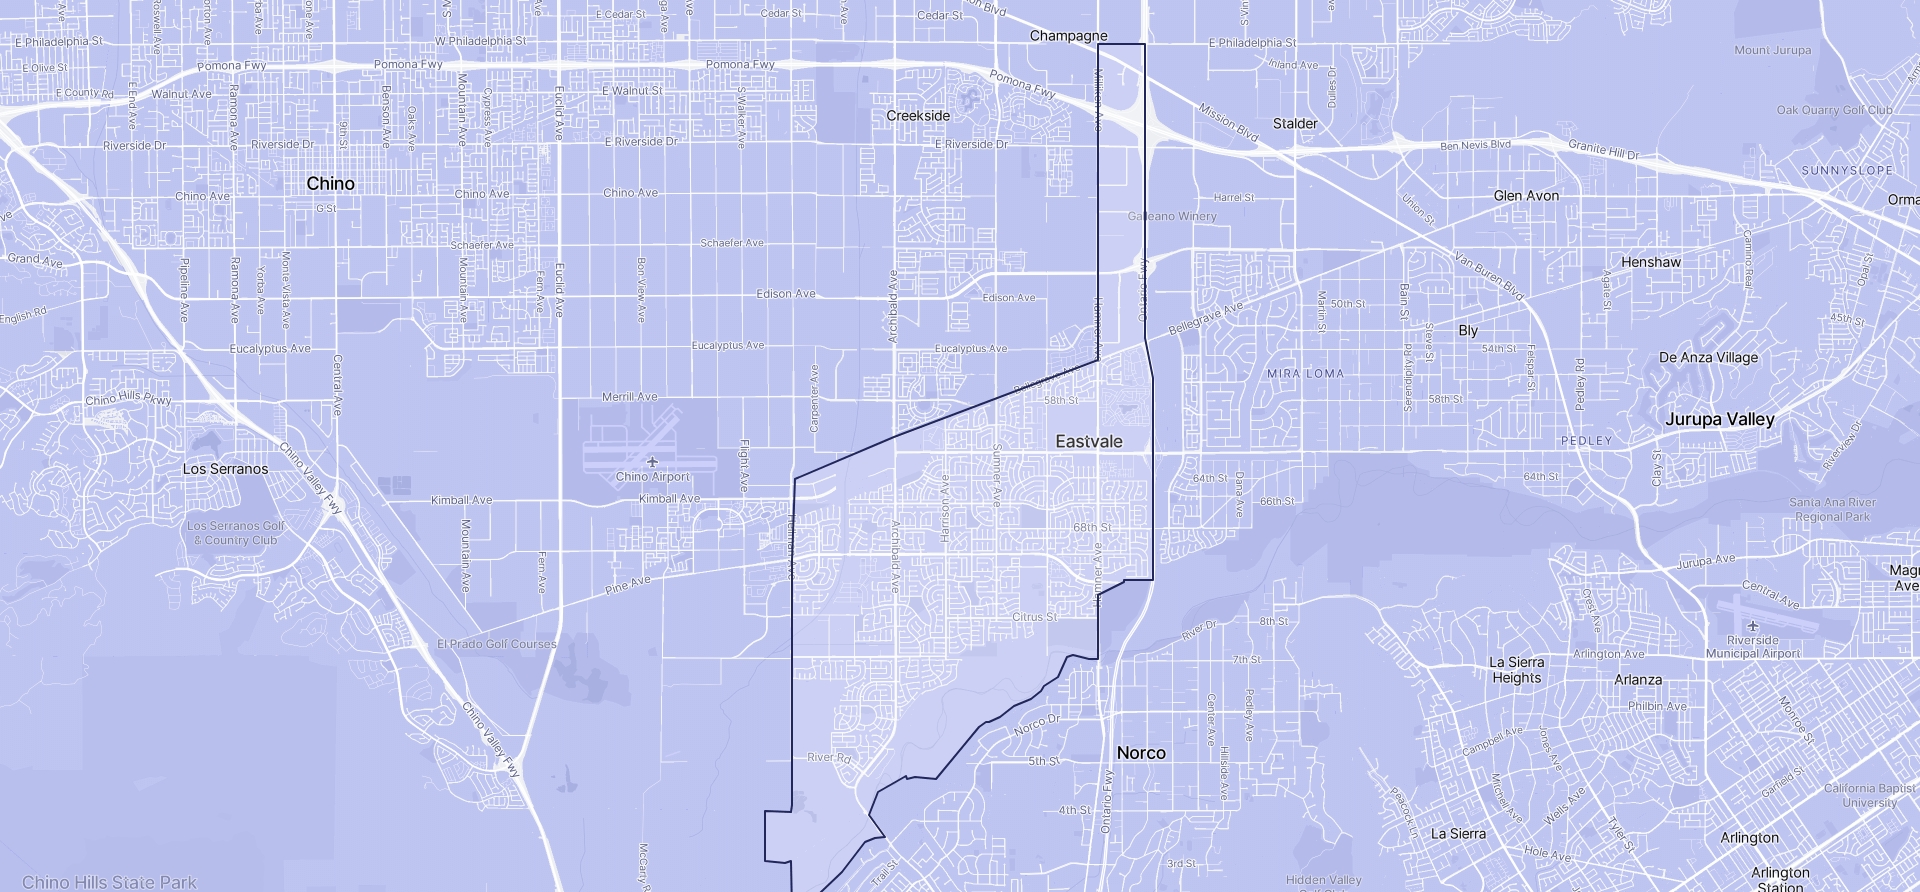 Image of Eastvale boundaries on a map.